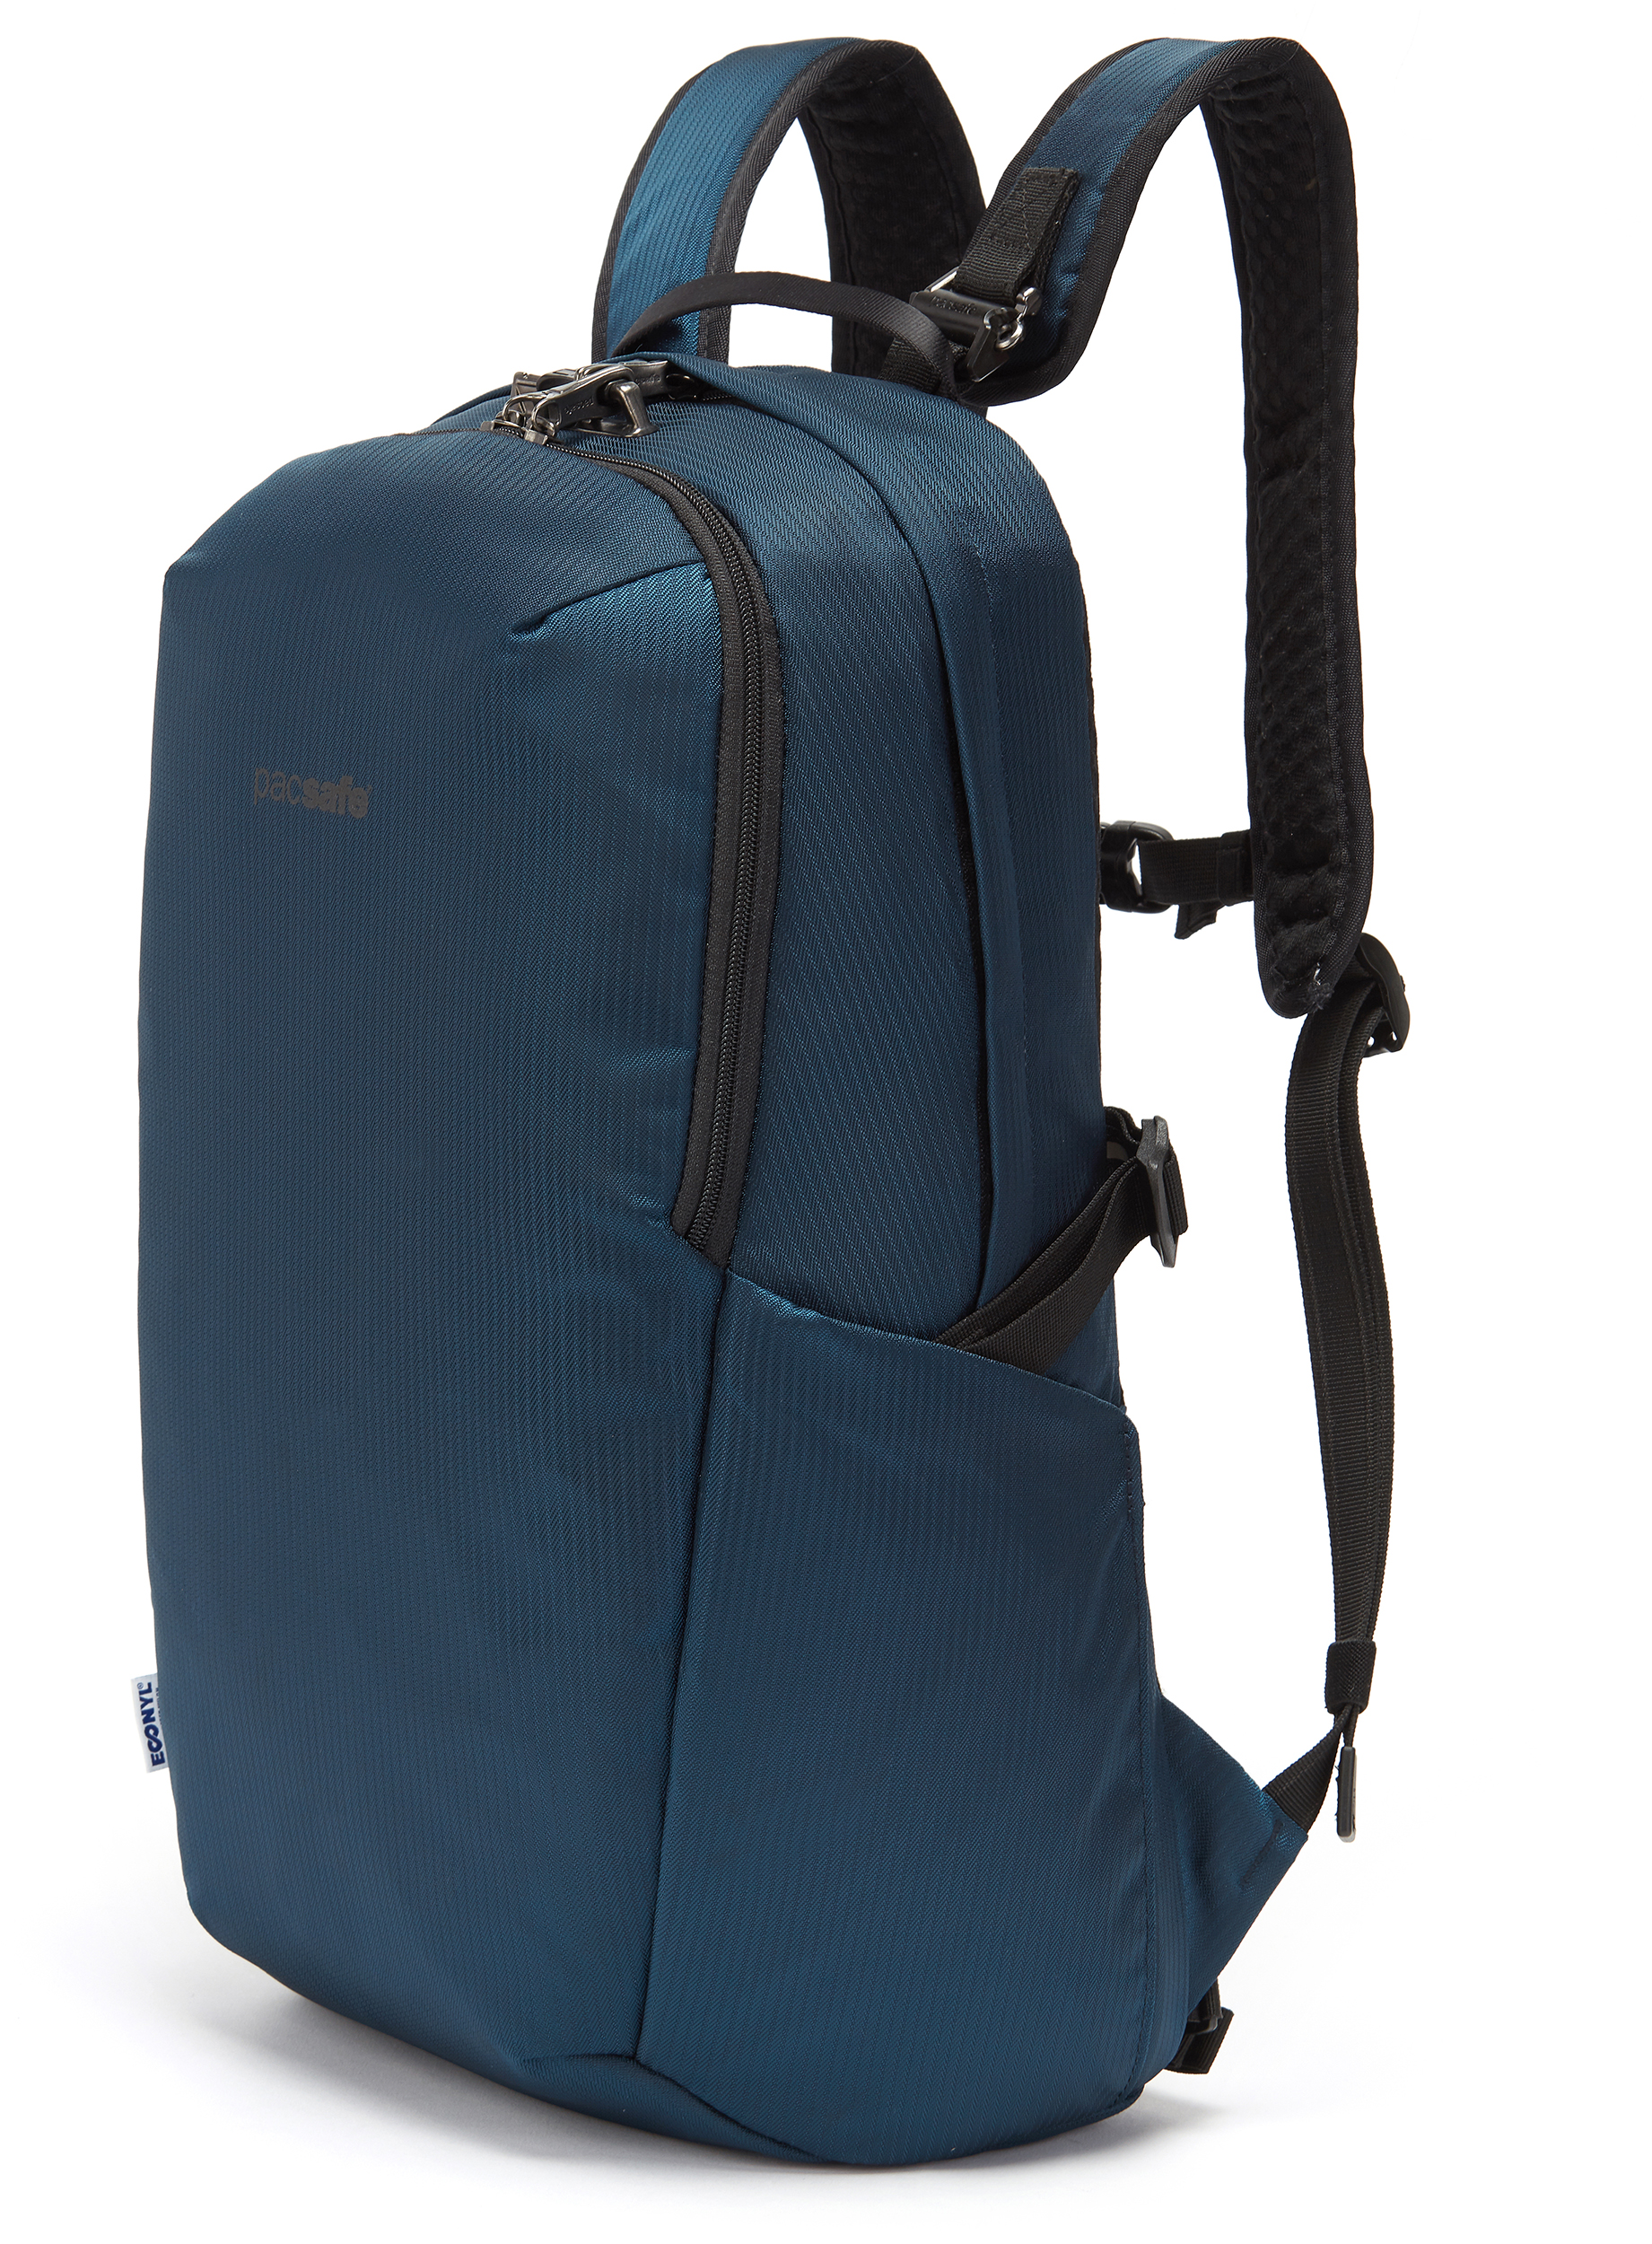 8bd42372efc Packs and bags | MEC